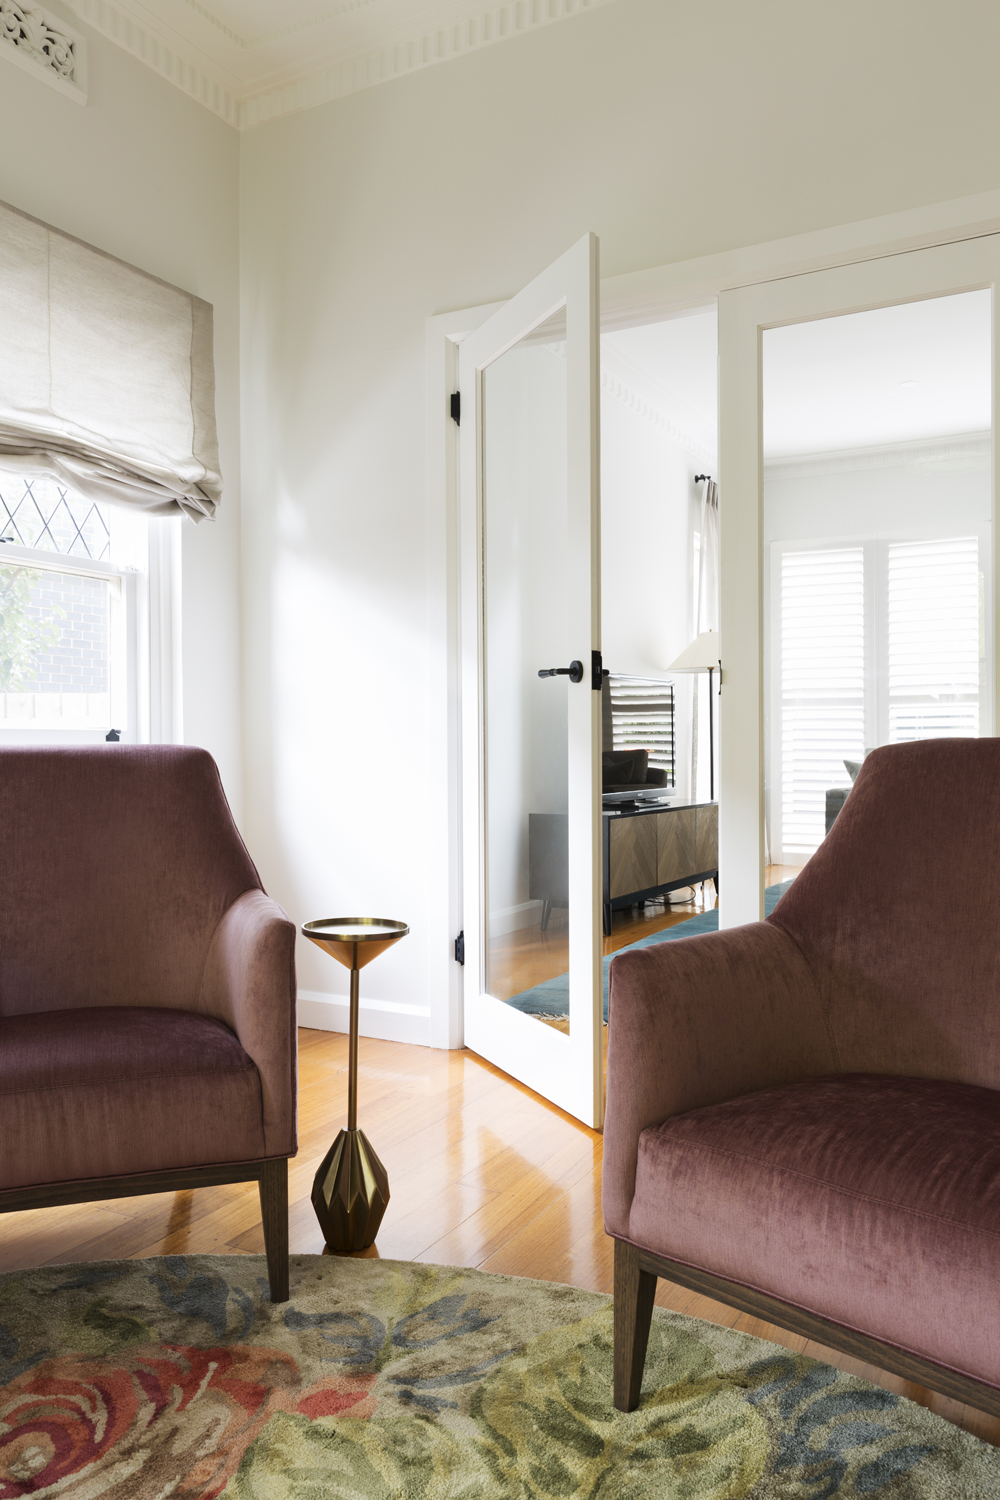 Ashburton sitting room makeover by Melbourne interior designer Meredith Lee.